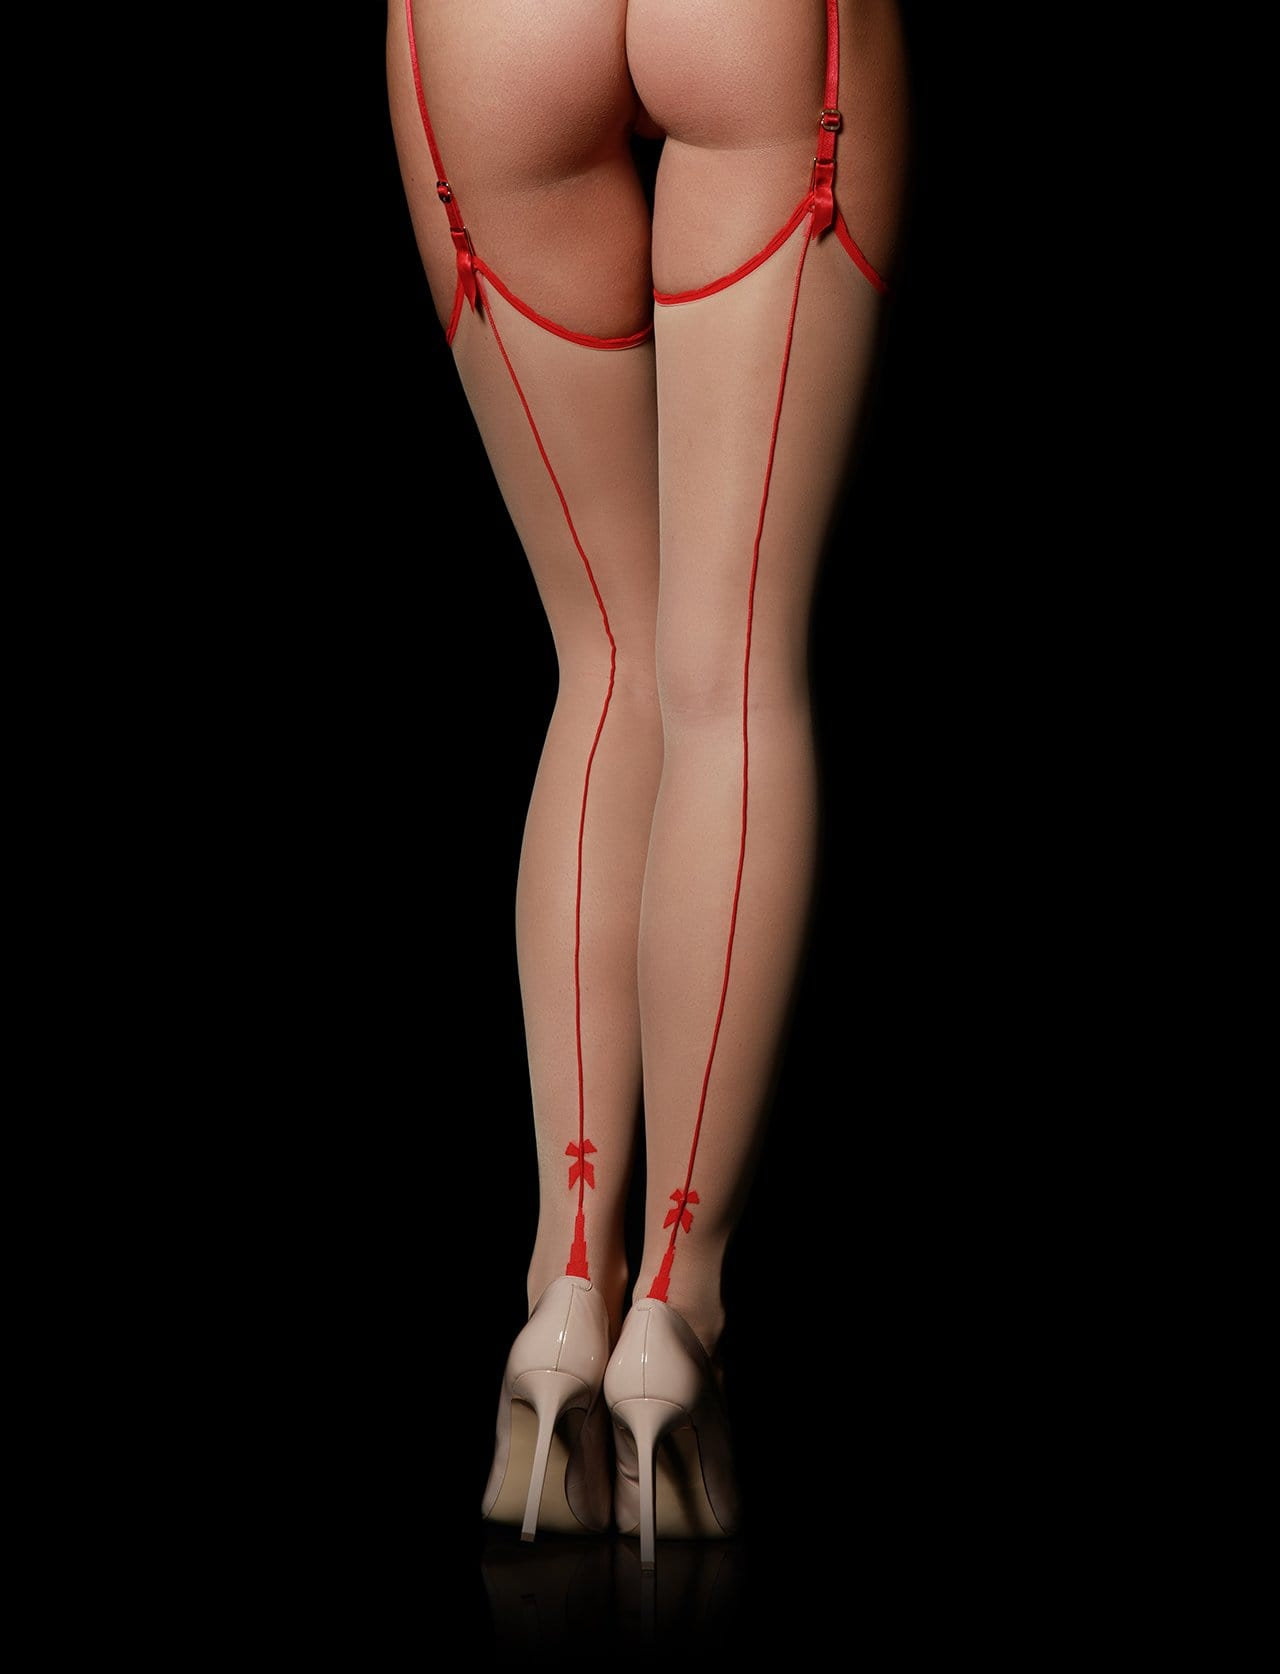 Chic Bowtie Red Stockings